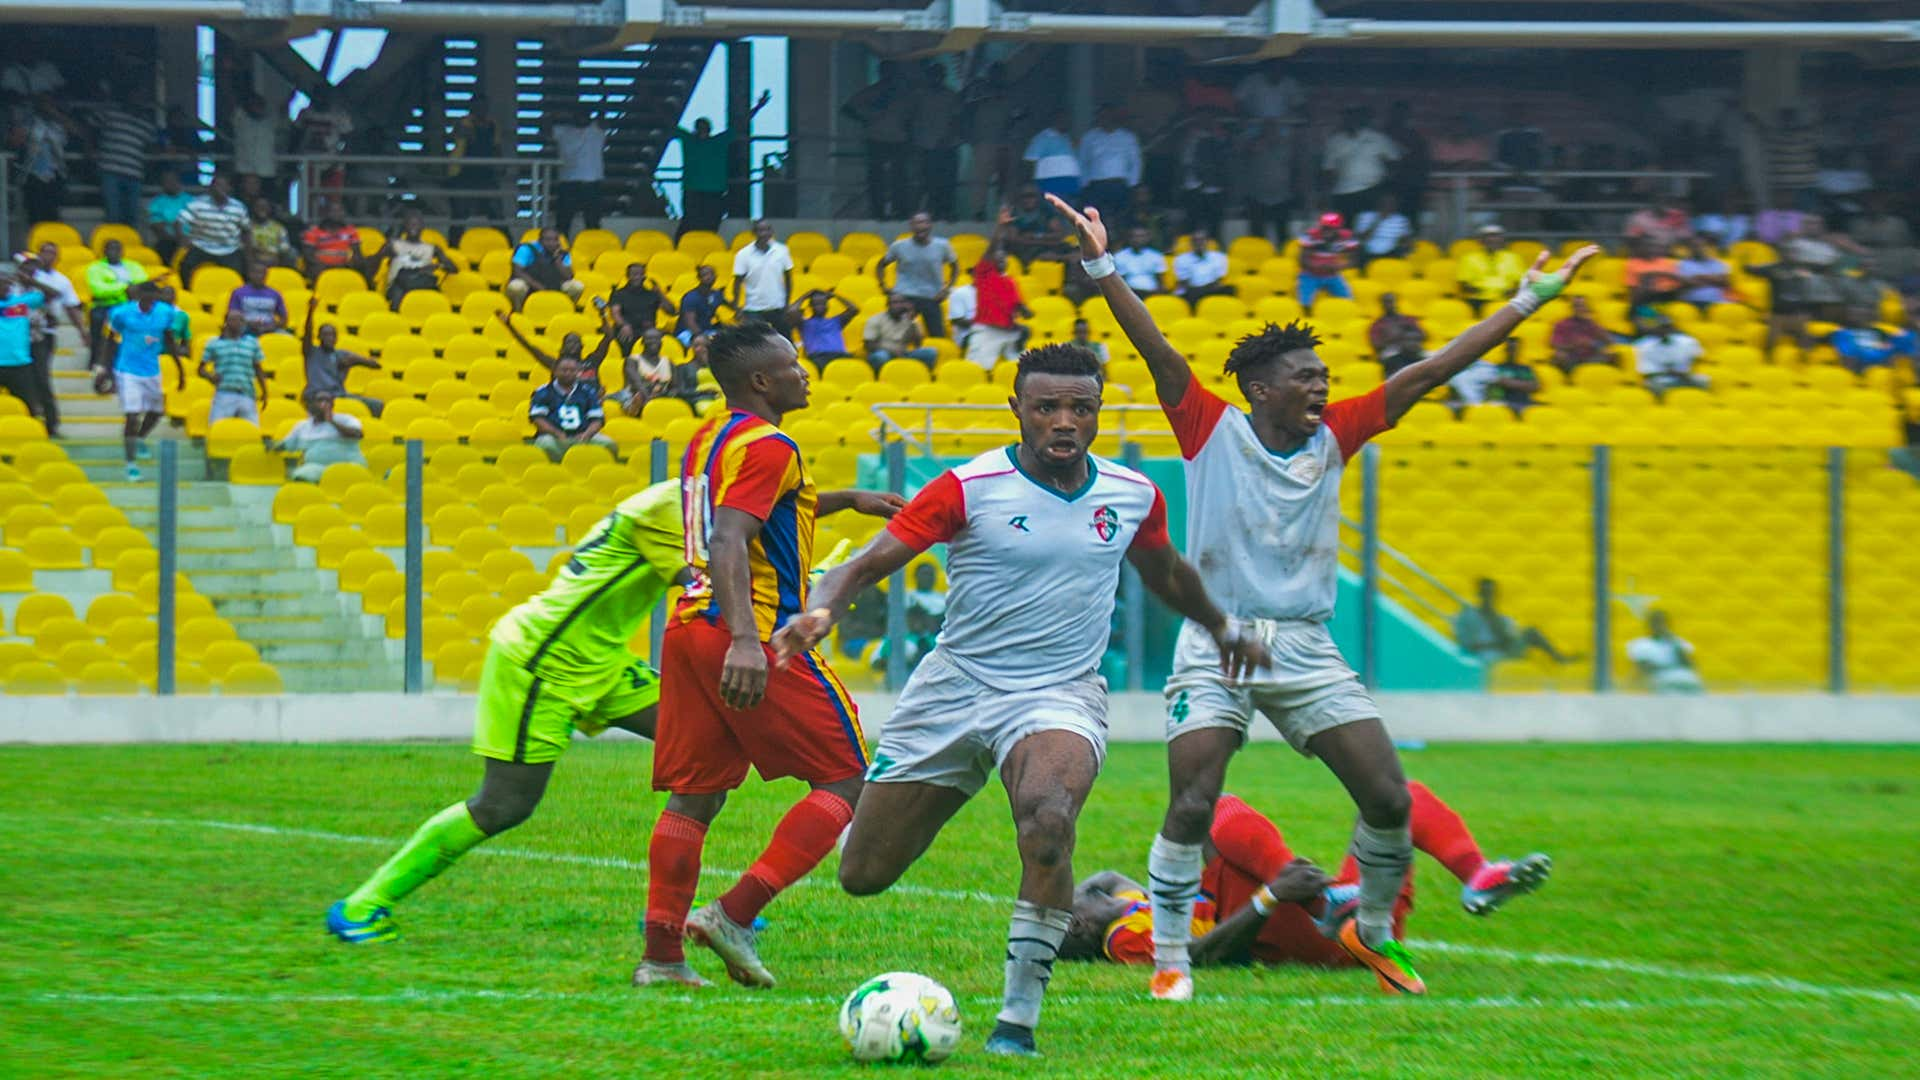 Caf Champions League: Hearts of Oak midfielder Nettey opens up on ambitions for WAC showdown